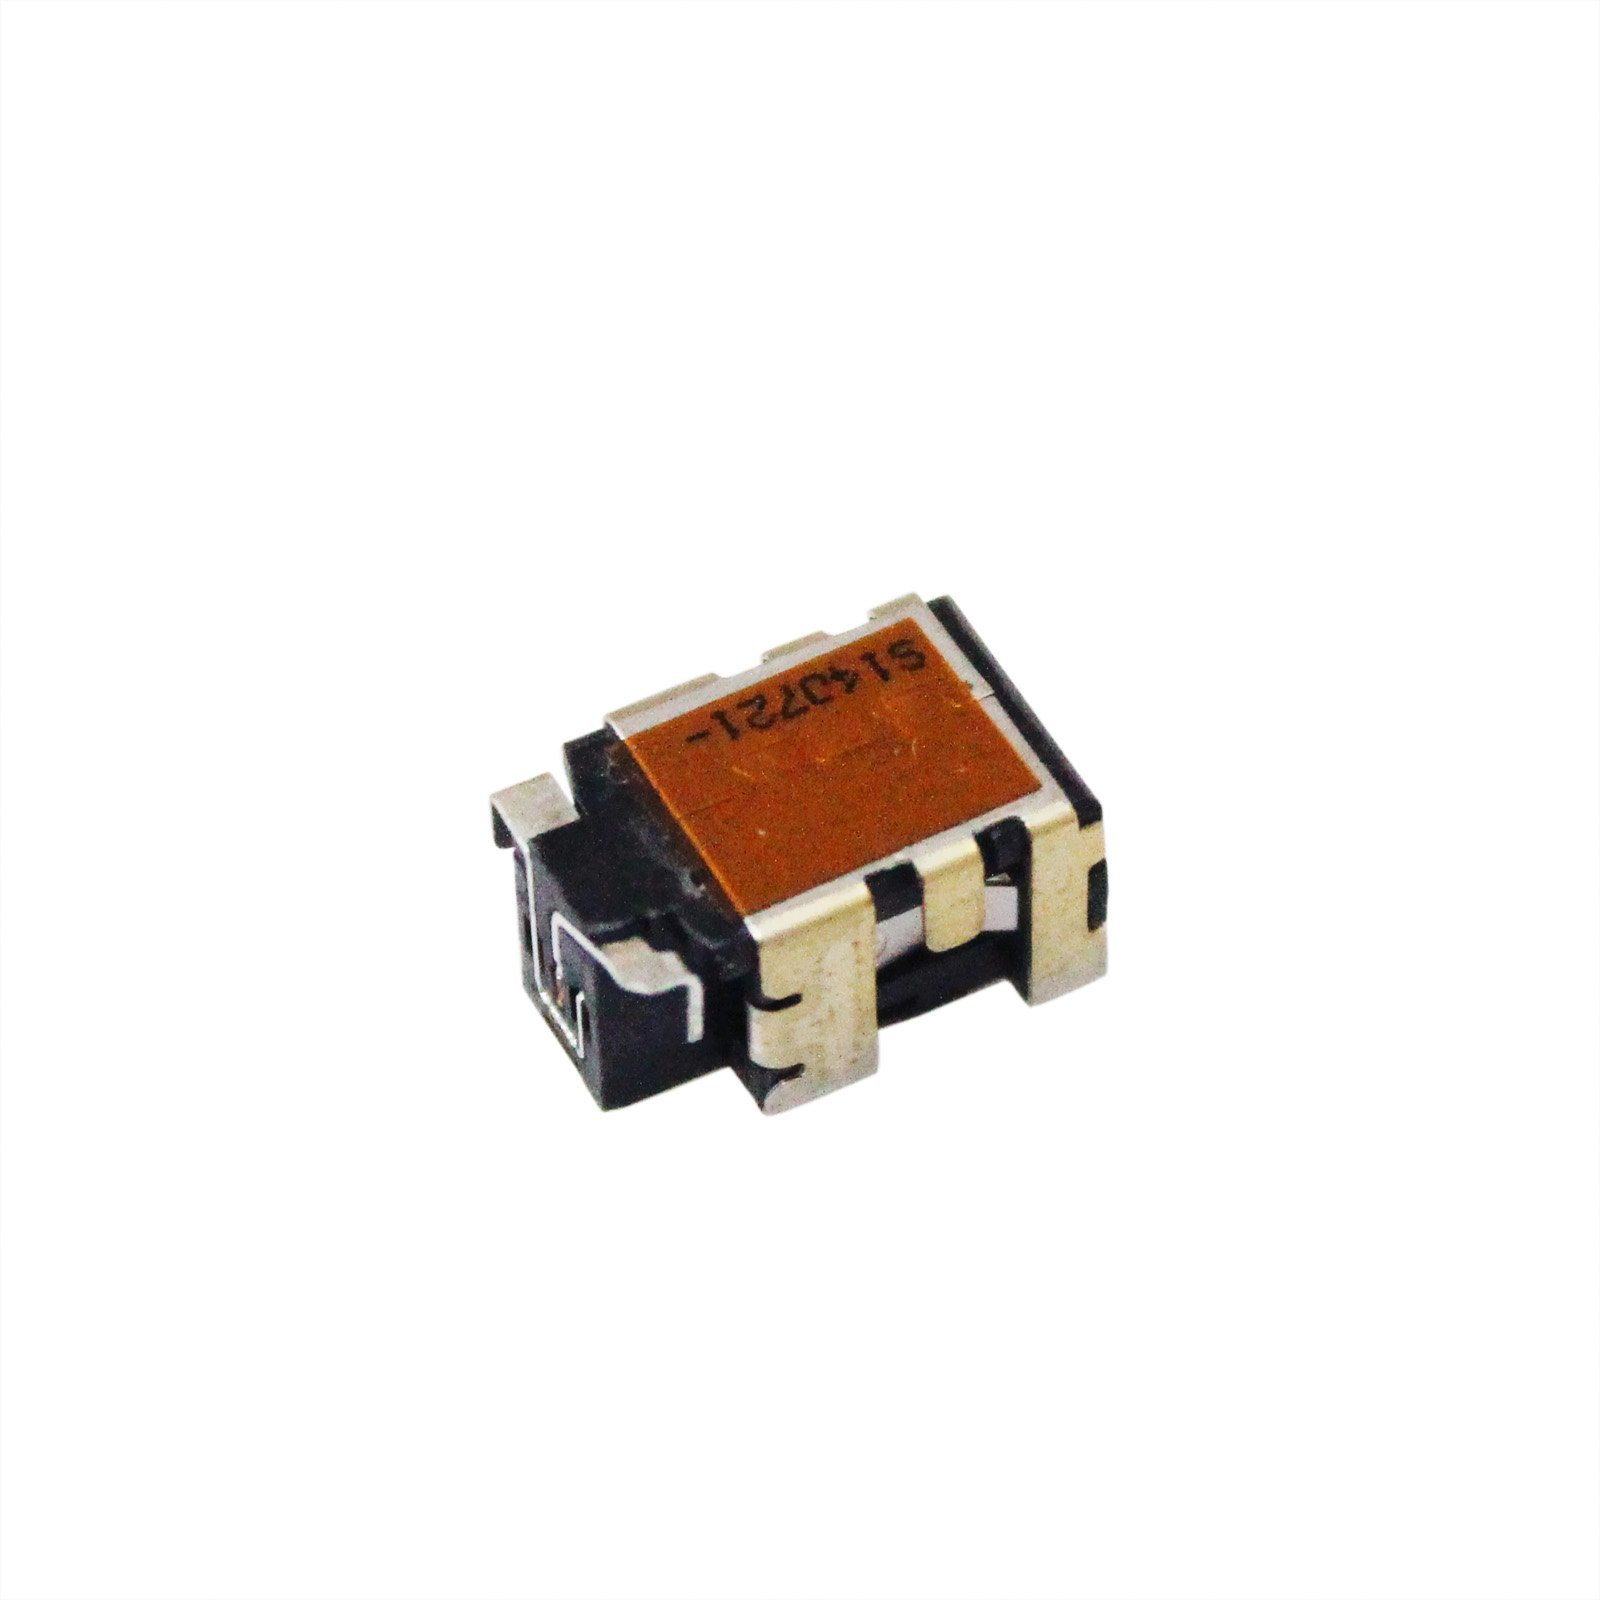 GinTai DC Power Jack Replacement for ASUS Compatible with n501jw ux501jw G501J G501JW G501JW-DS71 UX501V UX501VW